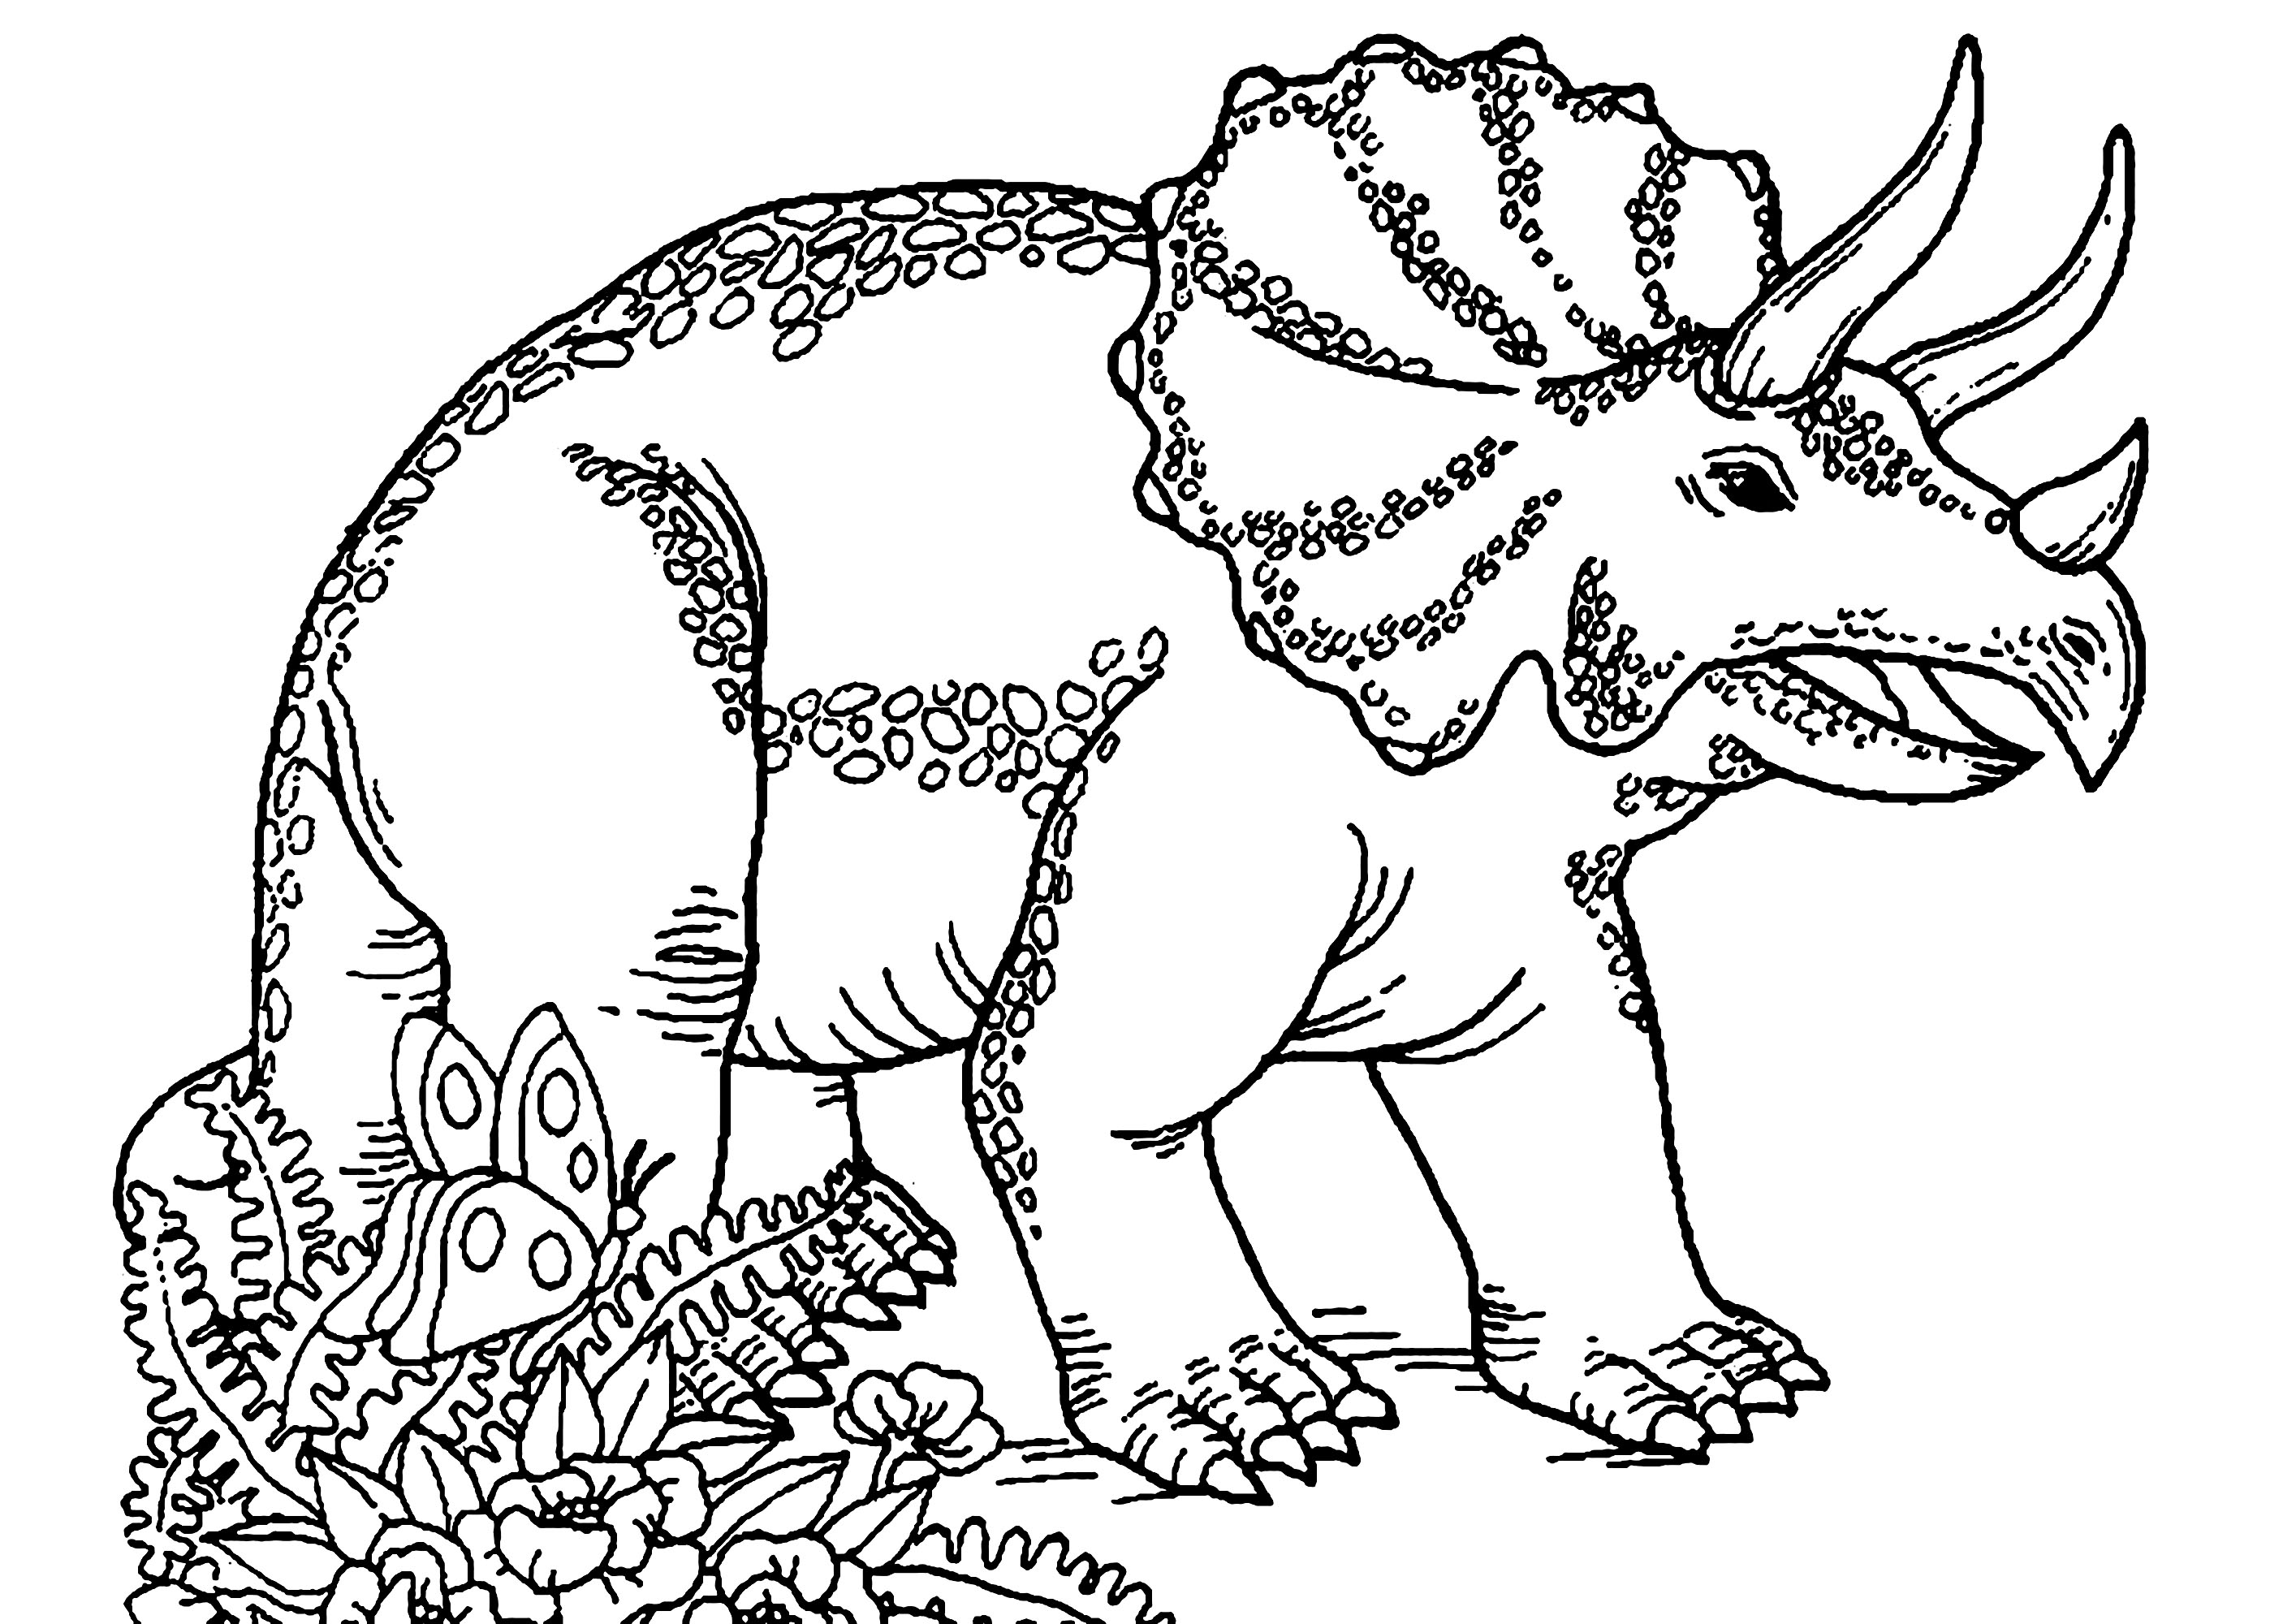 dinosaur pictures for kids dinosaurs to print triceratops dinosaurs kids coloring pictures for dinosaur kids